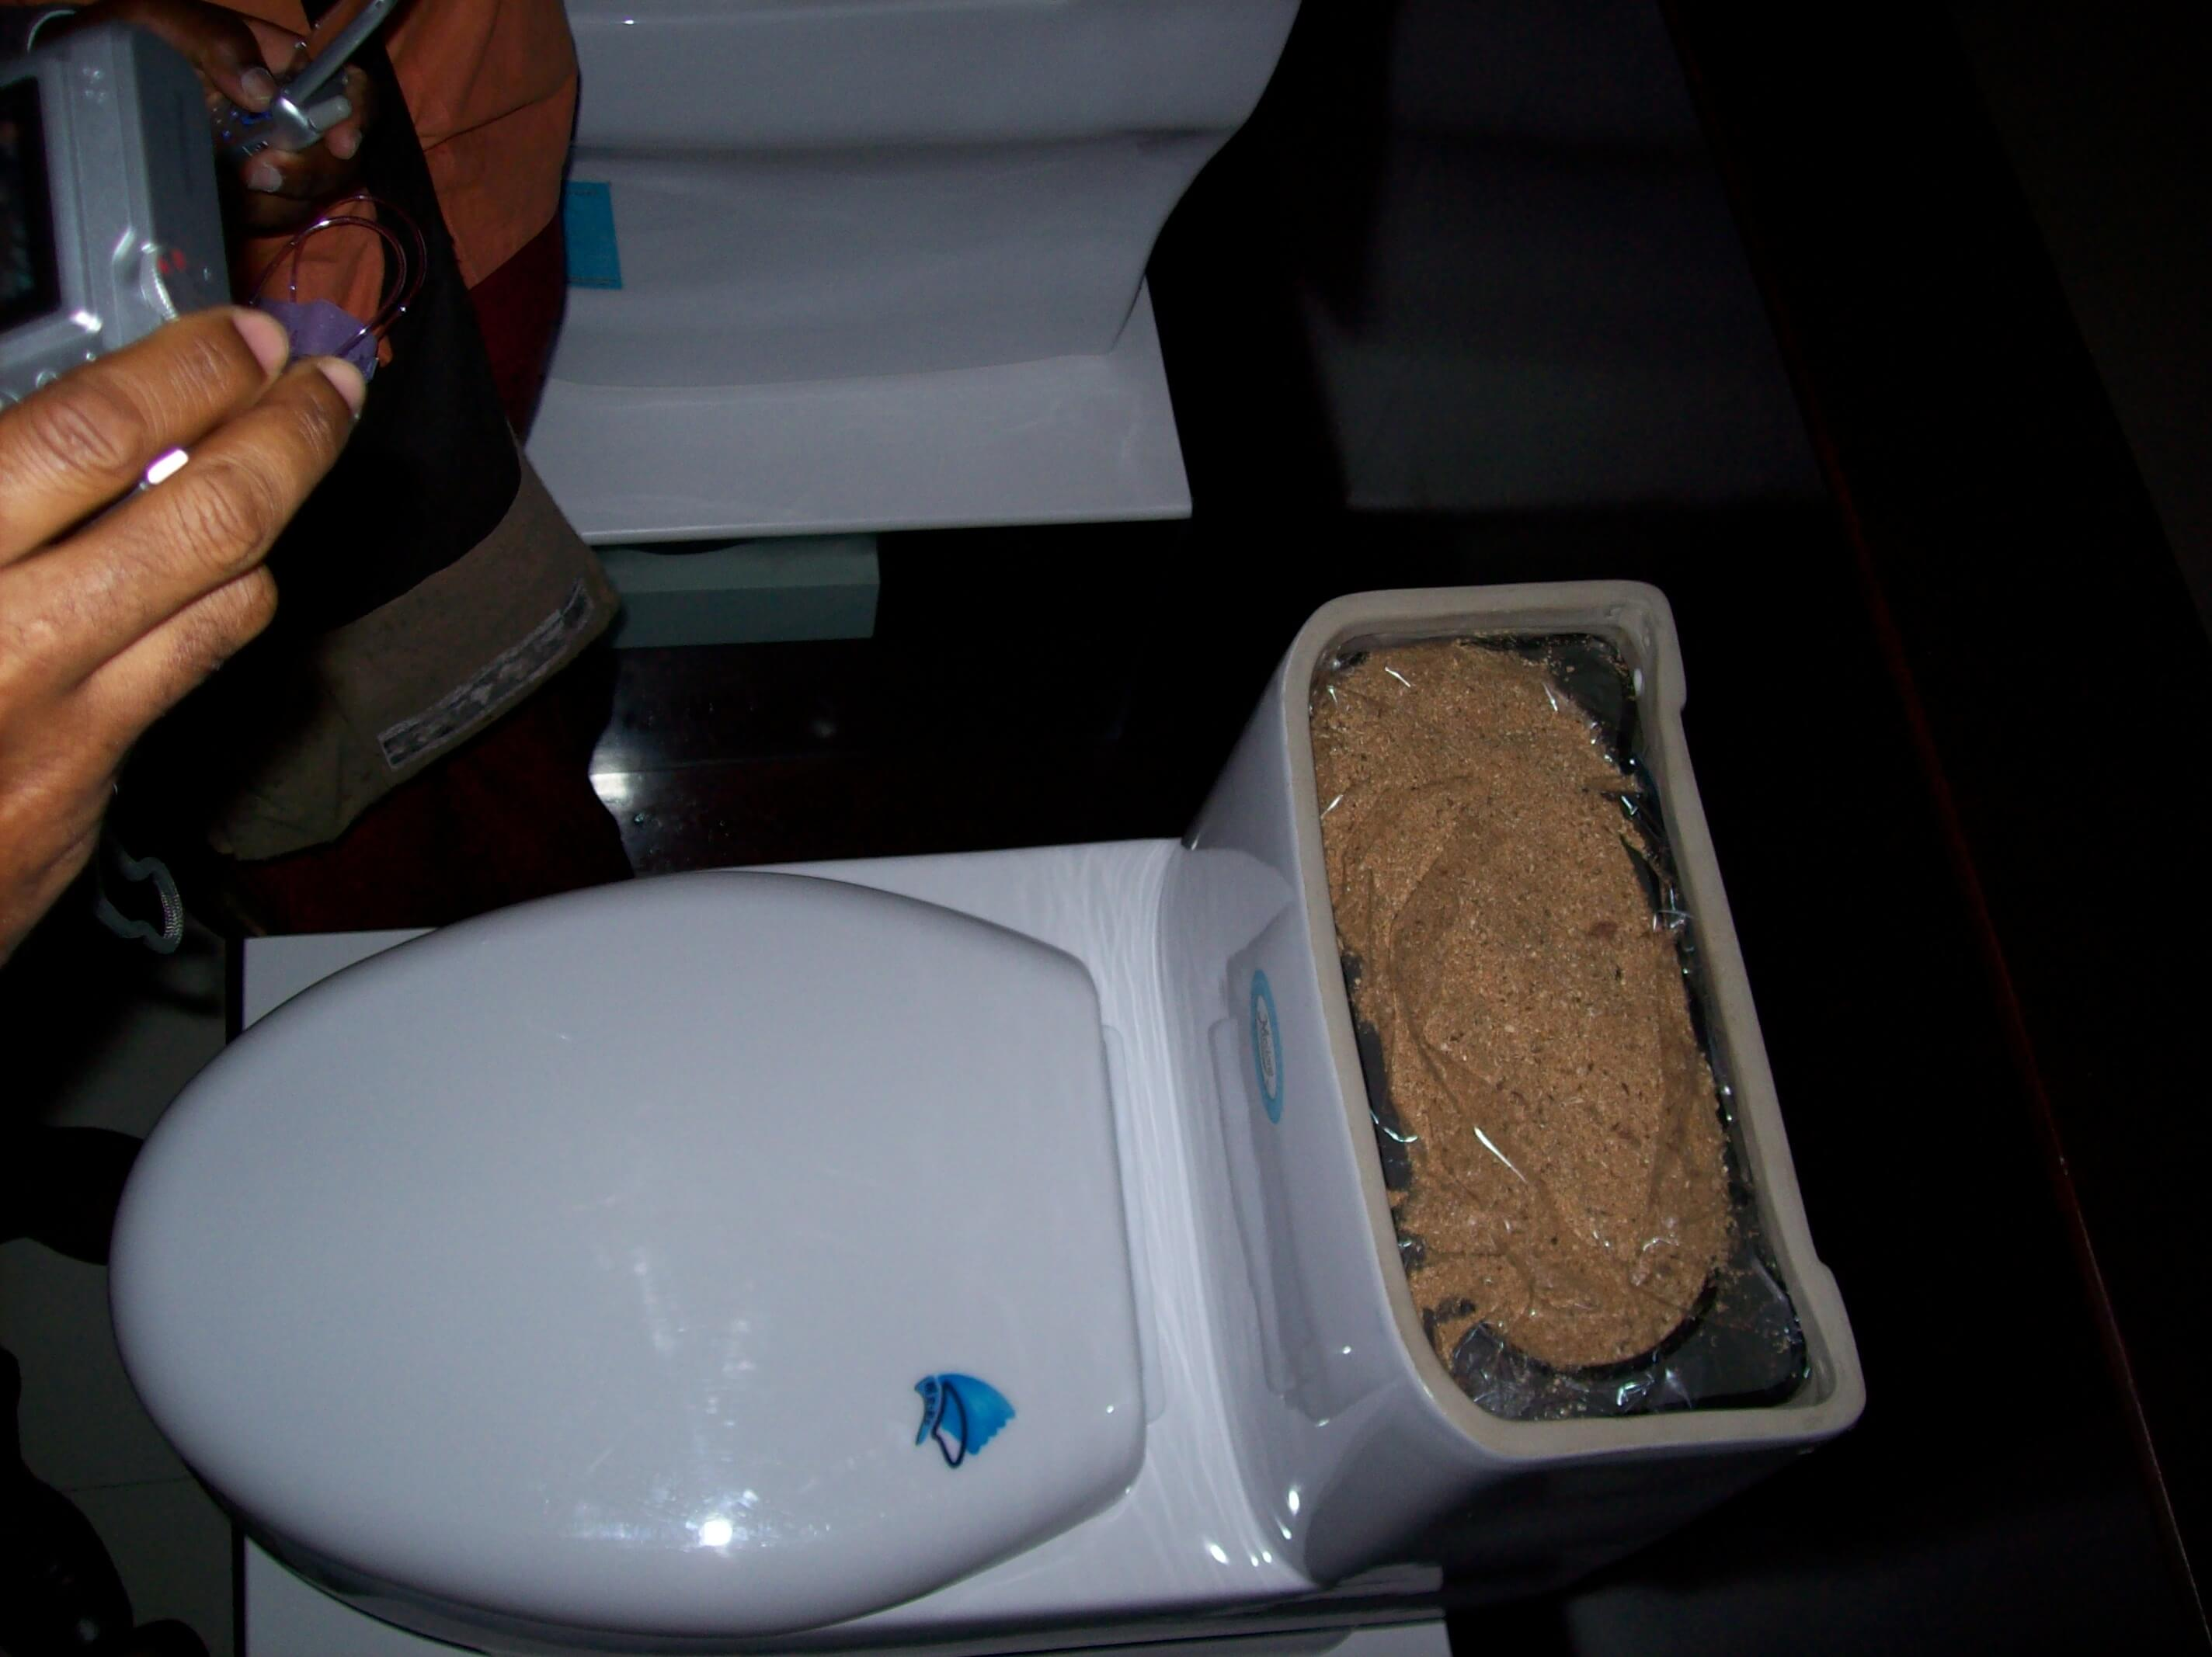 Composting toilet with external composting using wood chip dispenser